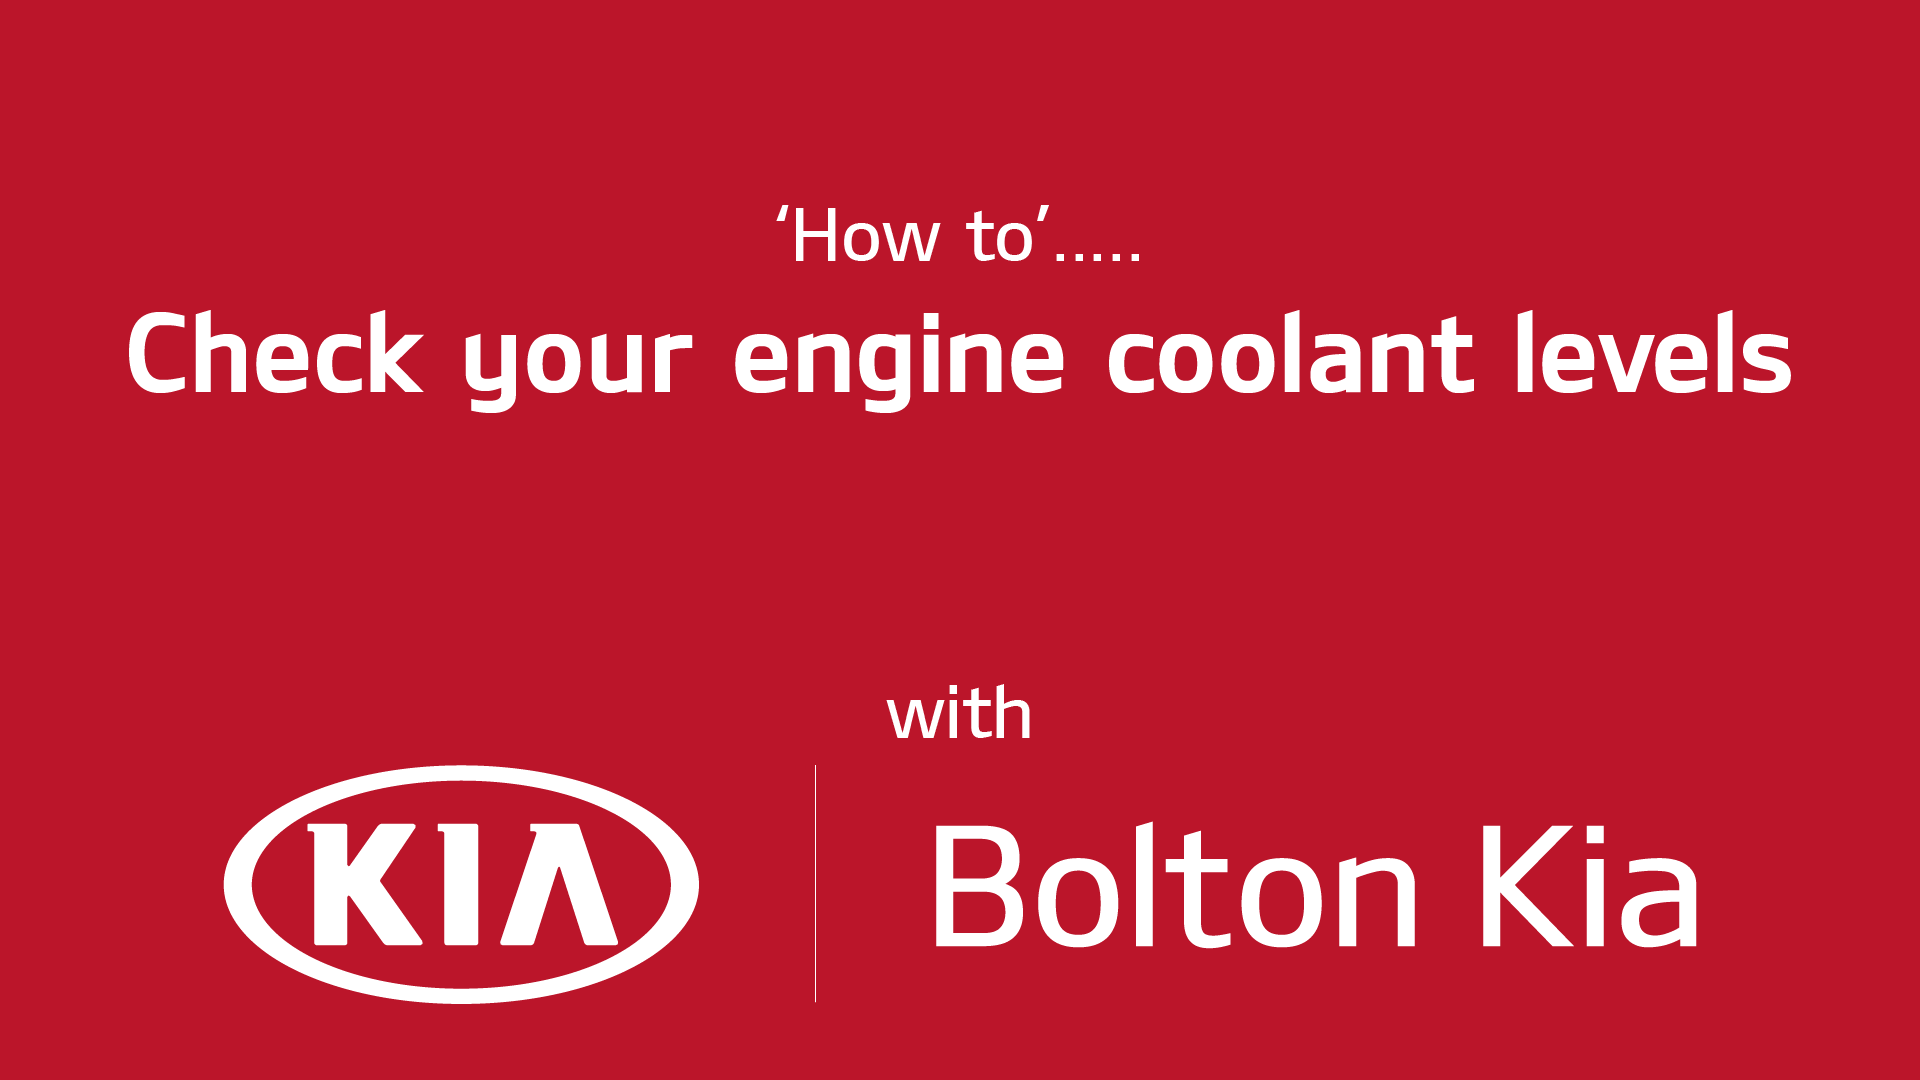 Kia Engine Coolant Levels Explainer Video Bee Bold Films